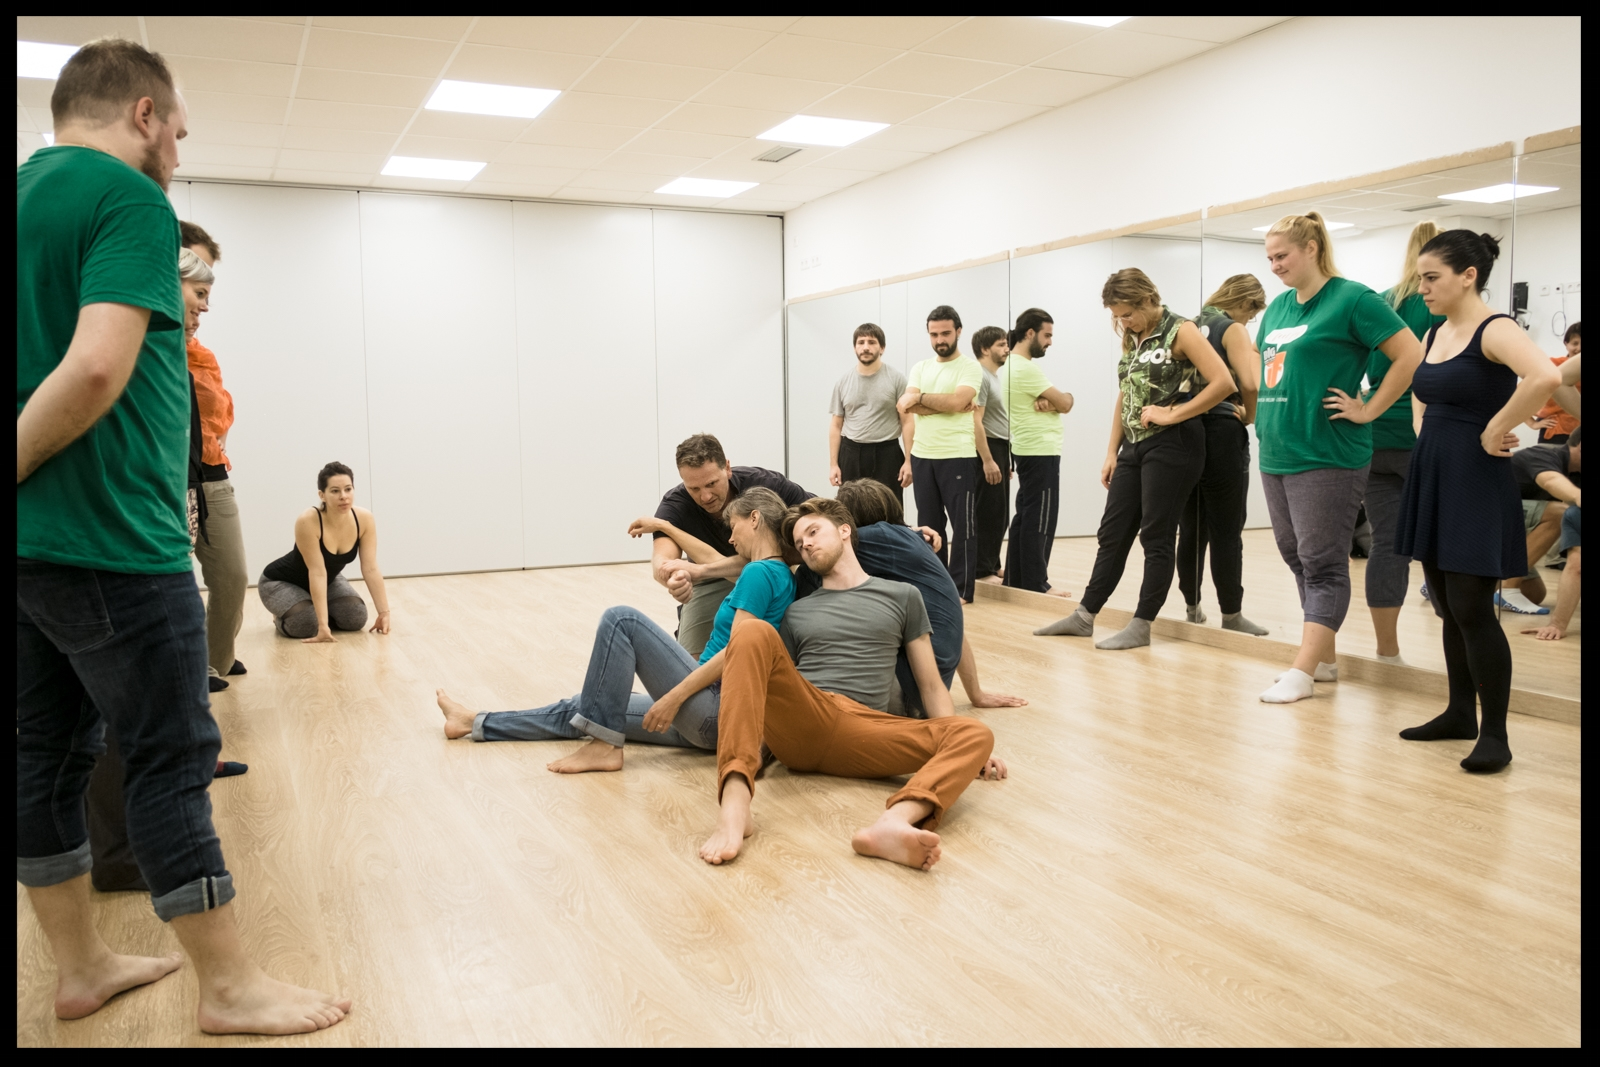 Professional - These workshops can be taken by improvisers with 6+ years experience who perform professionally and teach or coach other improvisers.